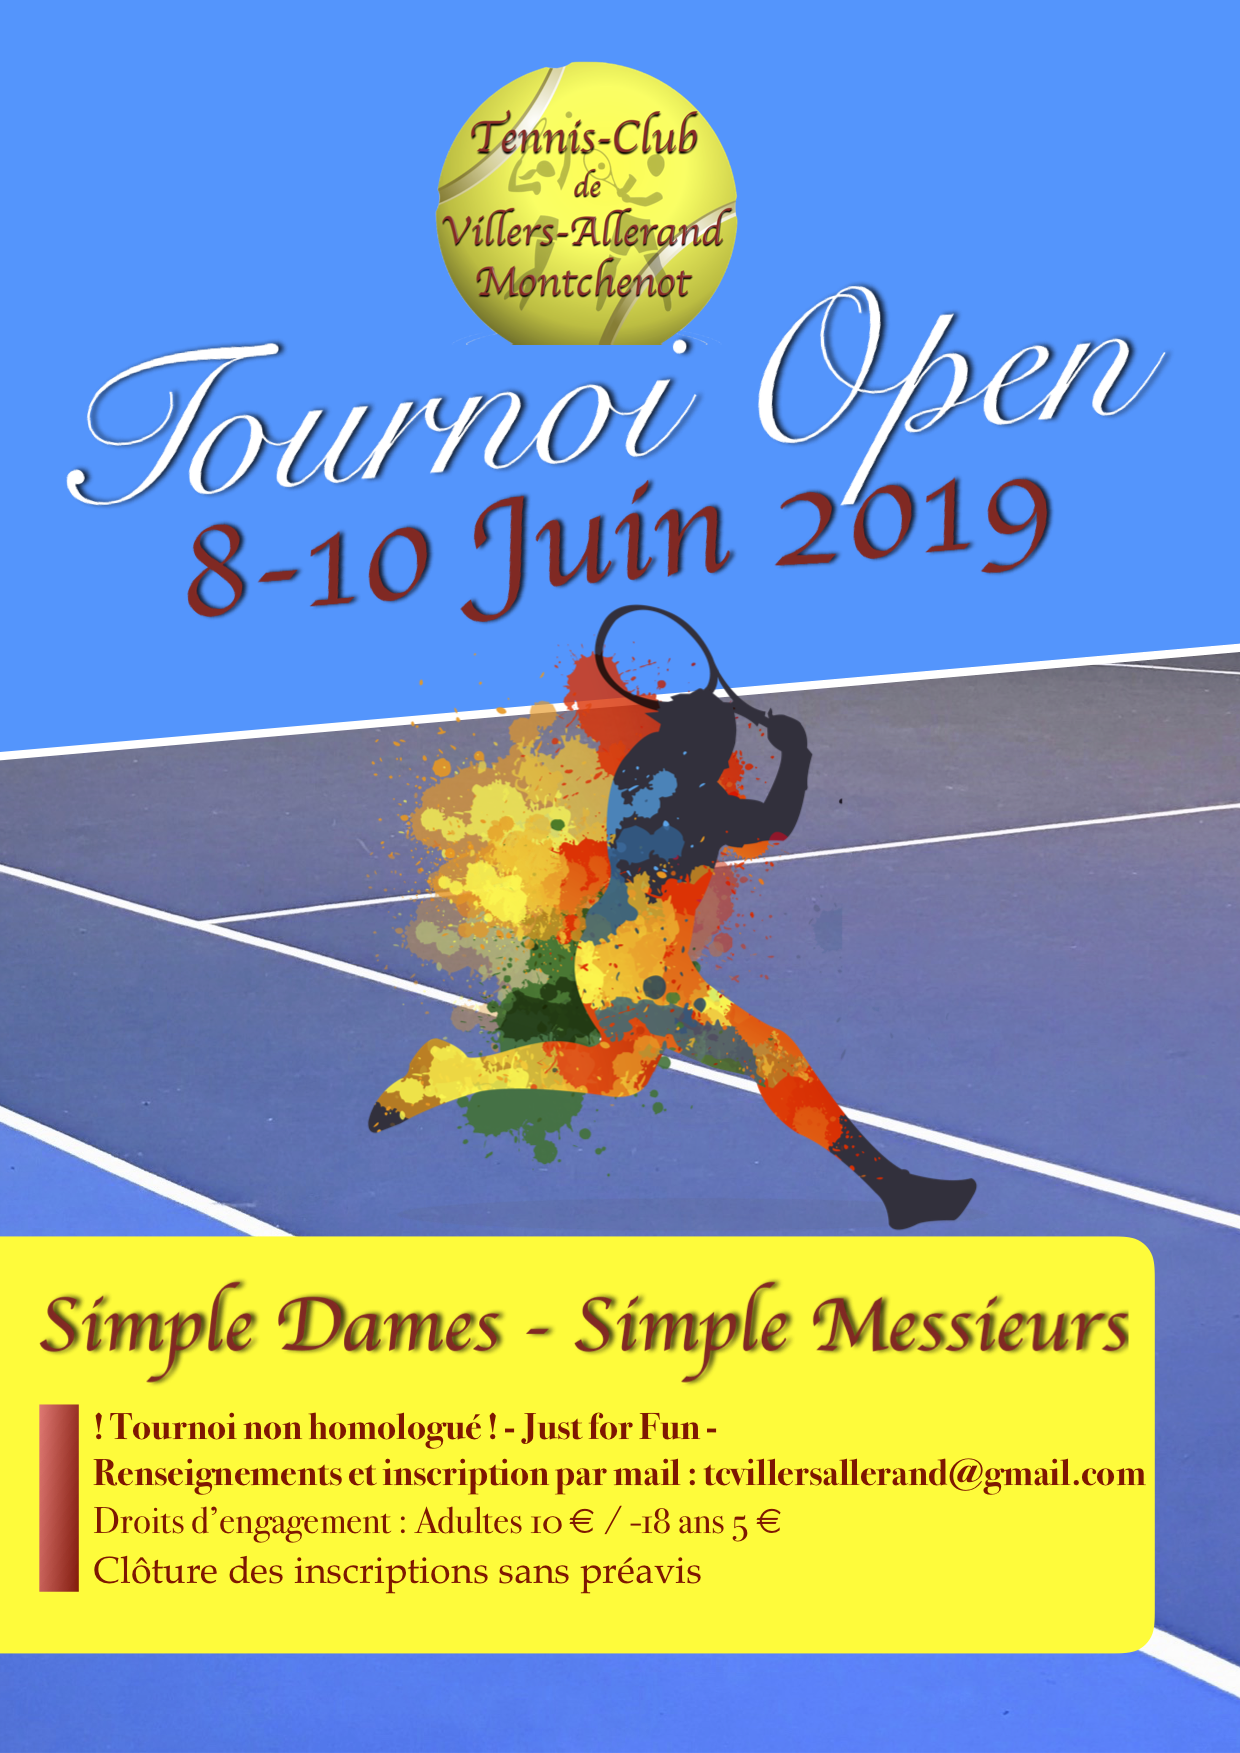 Tournoi de Tennis @ Tennis-Club | Villers-Allerand | Grand Est | France